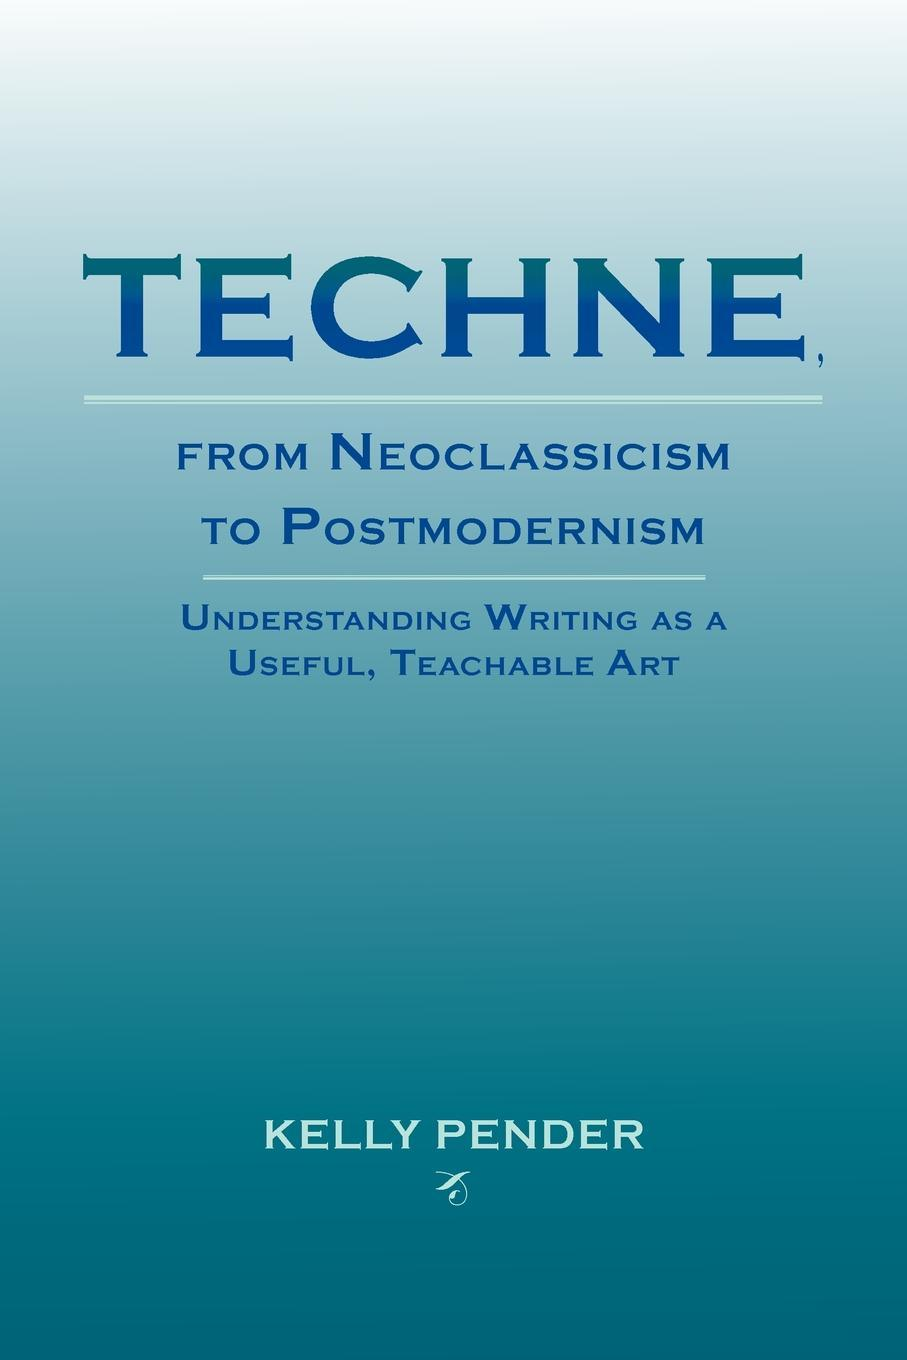 Techne, from Neoclassicism to Postmodernism: Understanding Writing as a Useful, Teachable Art EB2370004173689